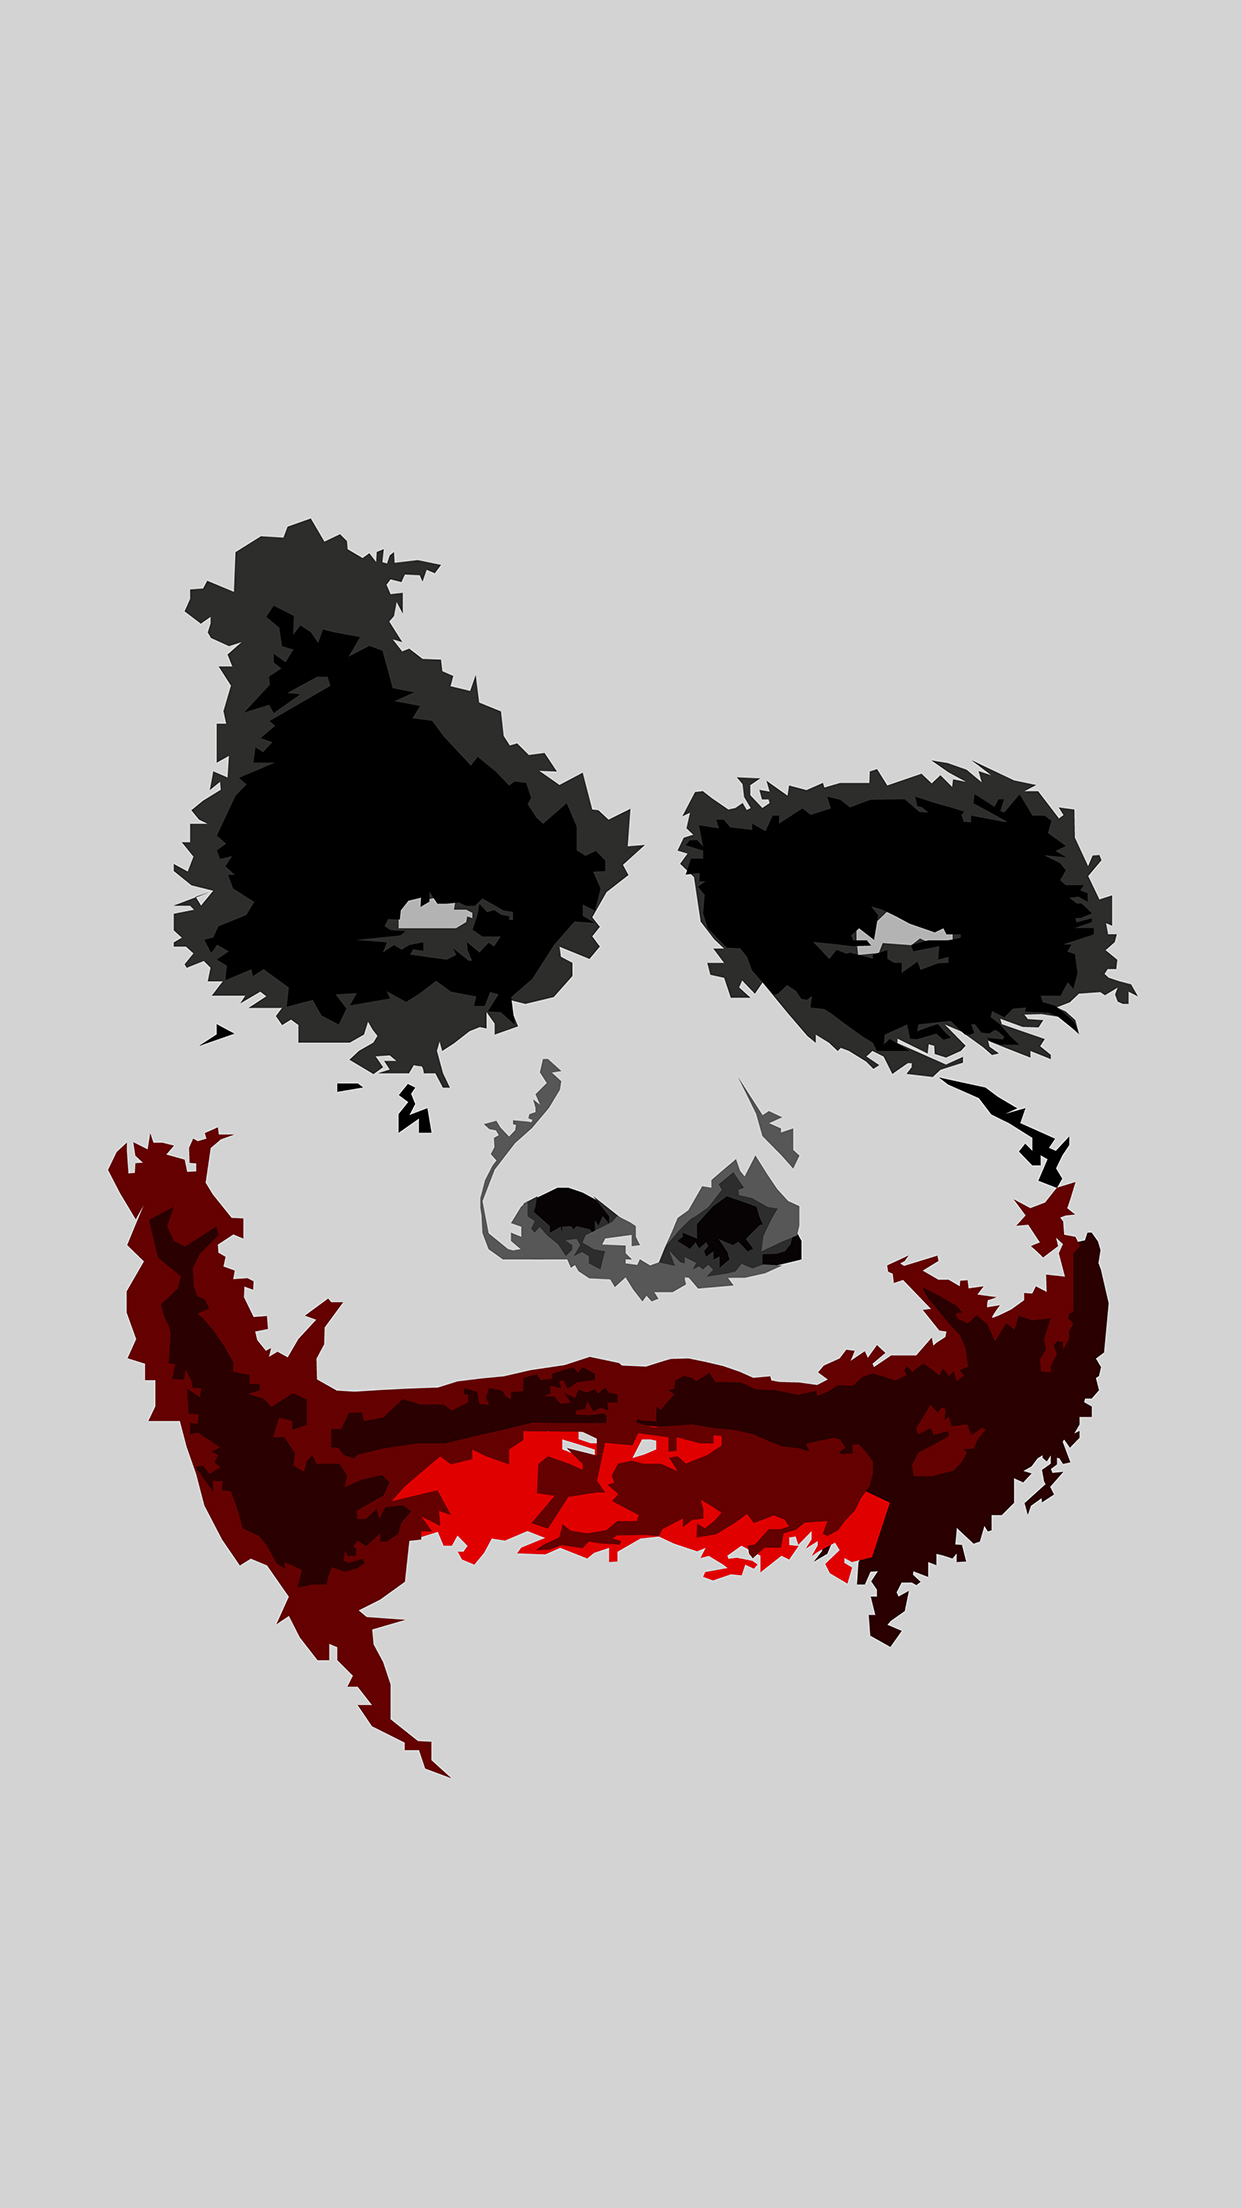 Wallpaper Iphone 5 Cartoon Joker Face Wallpaper For Iphone X 8 7 6 Free Download